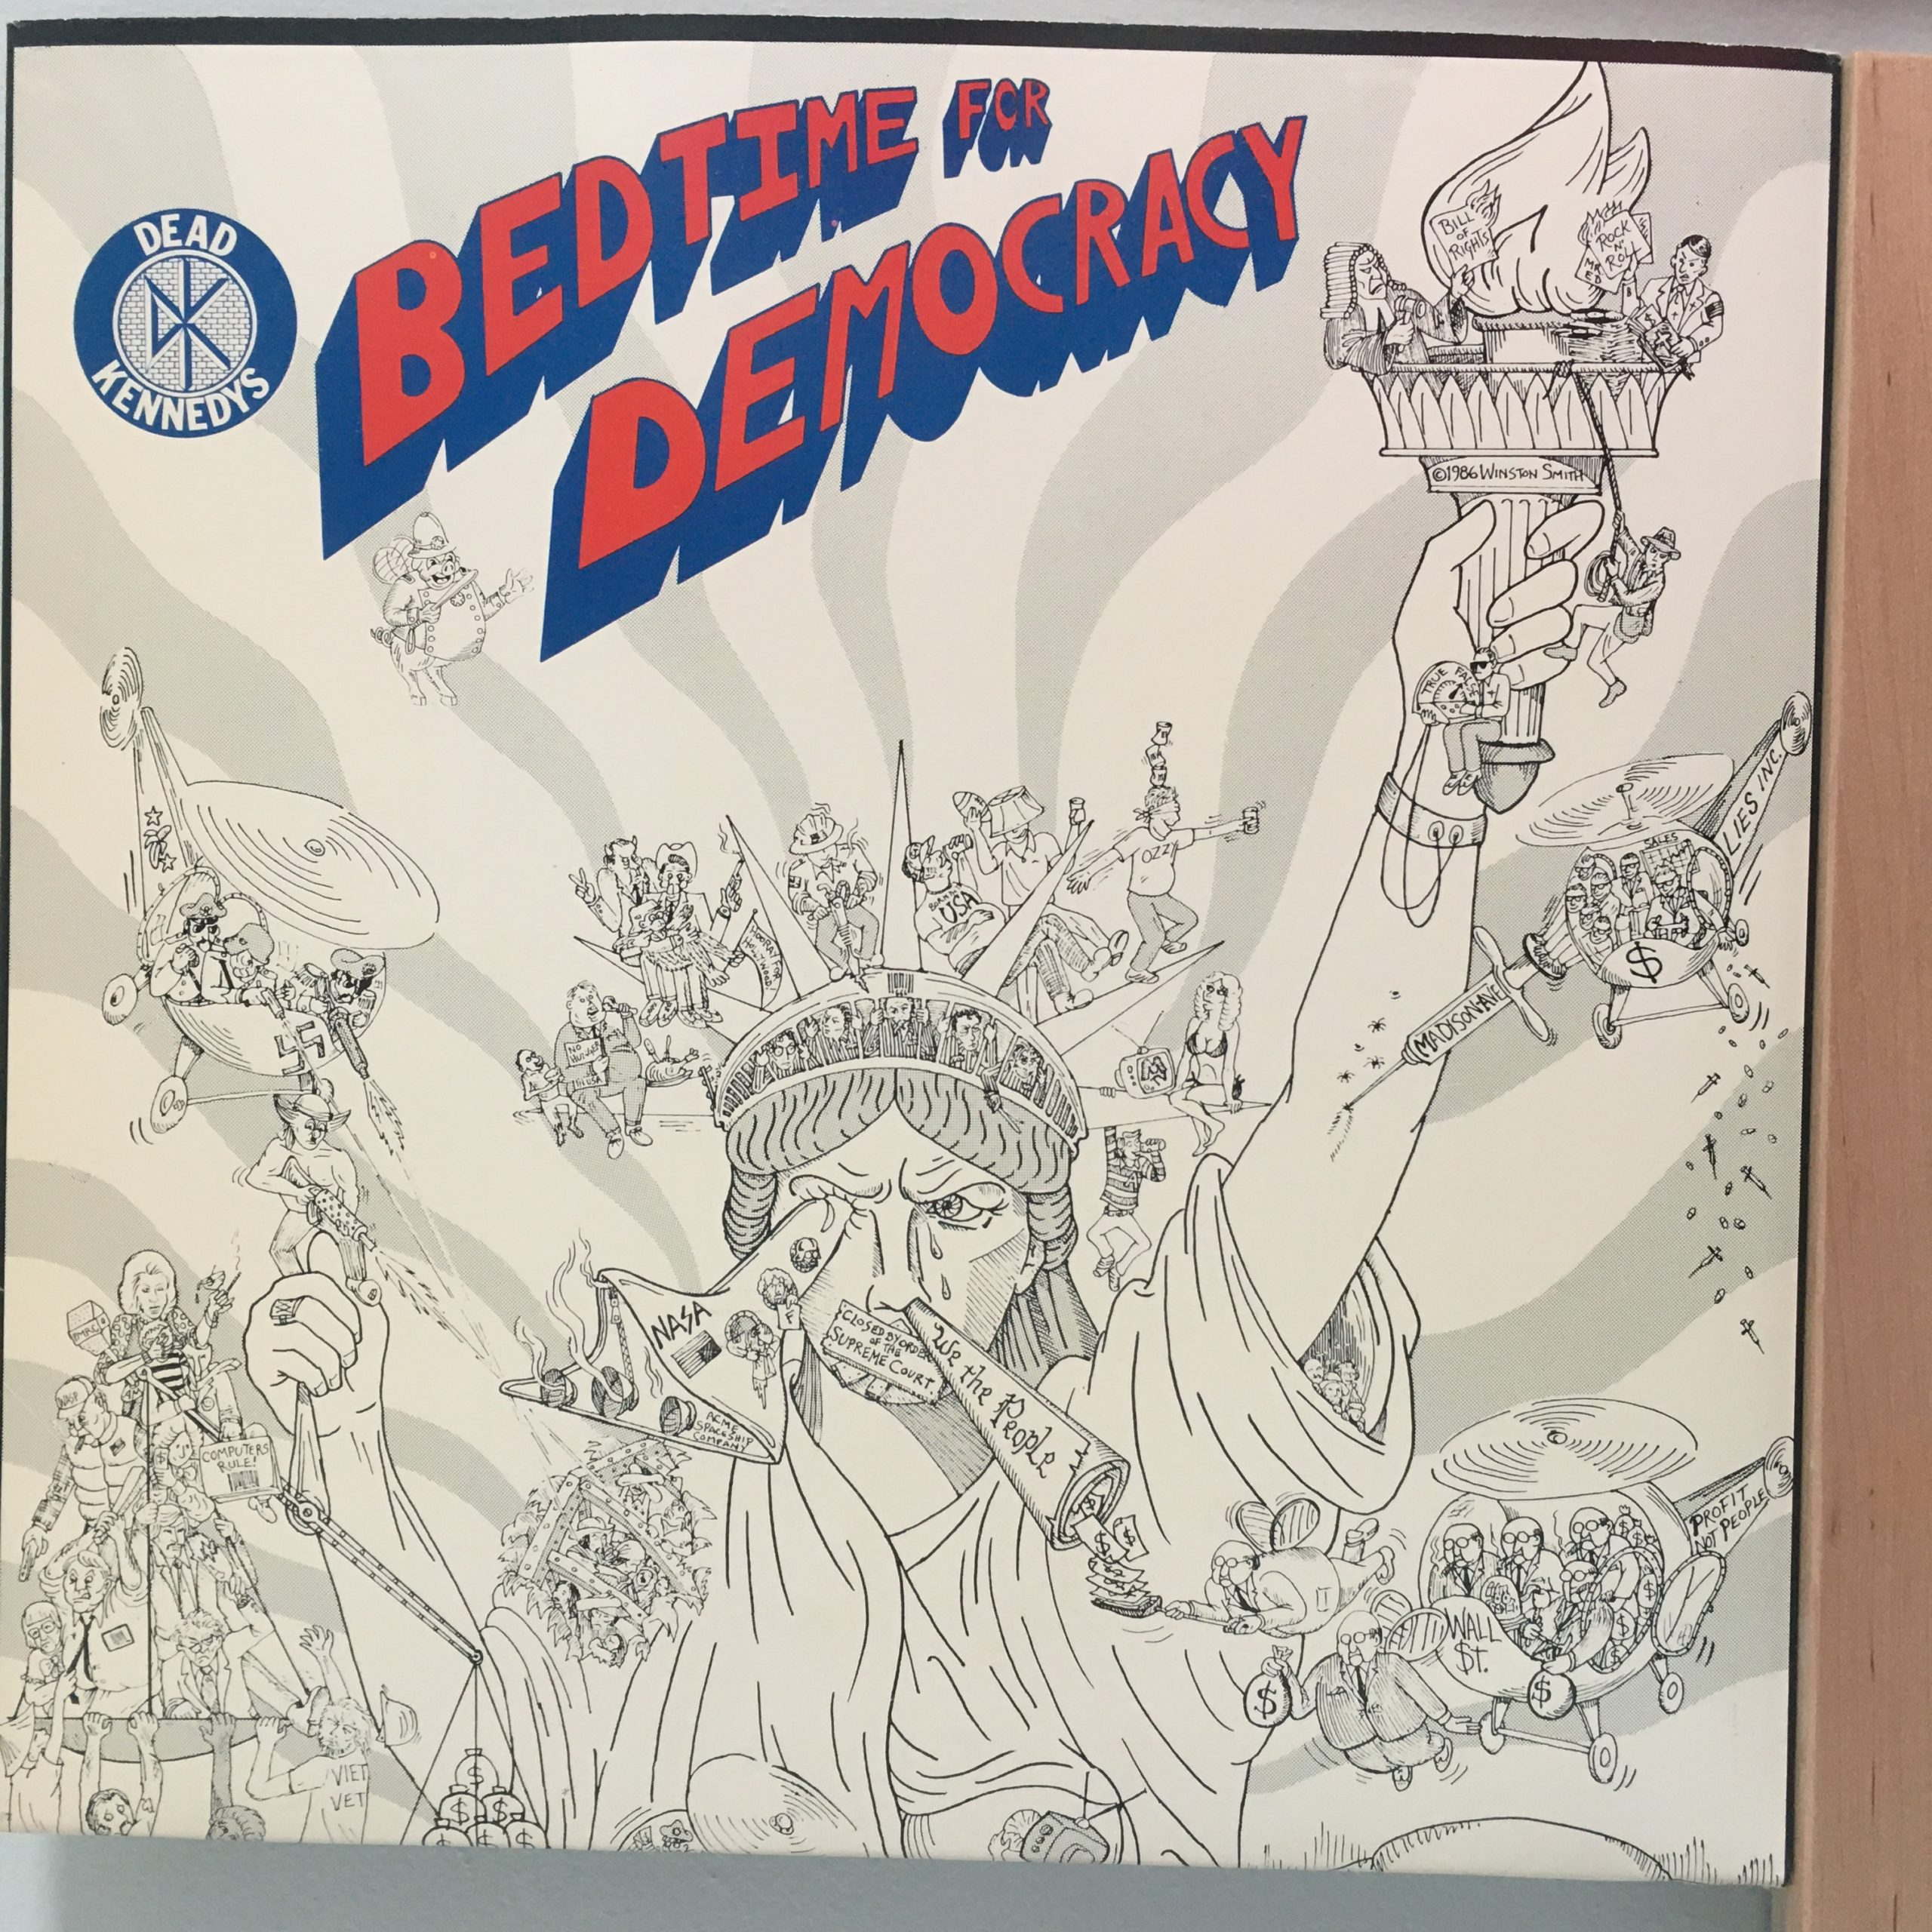 Bedtime for Democracy front cover